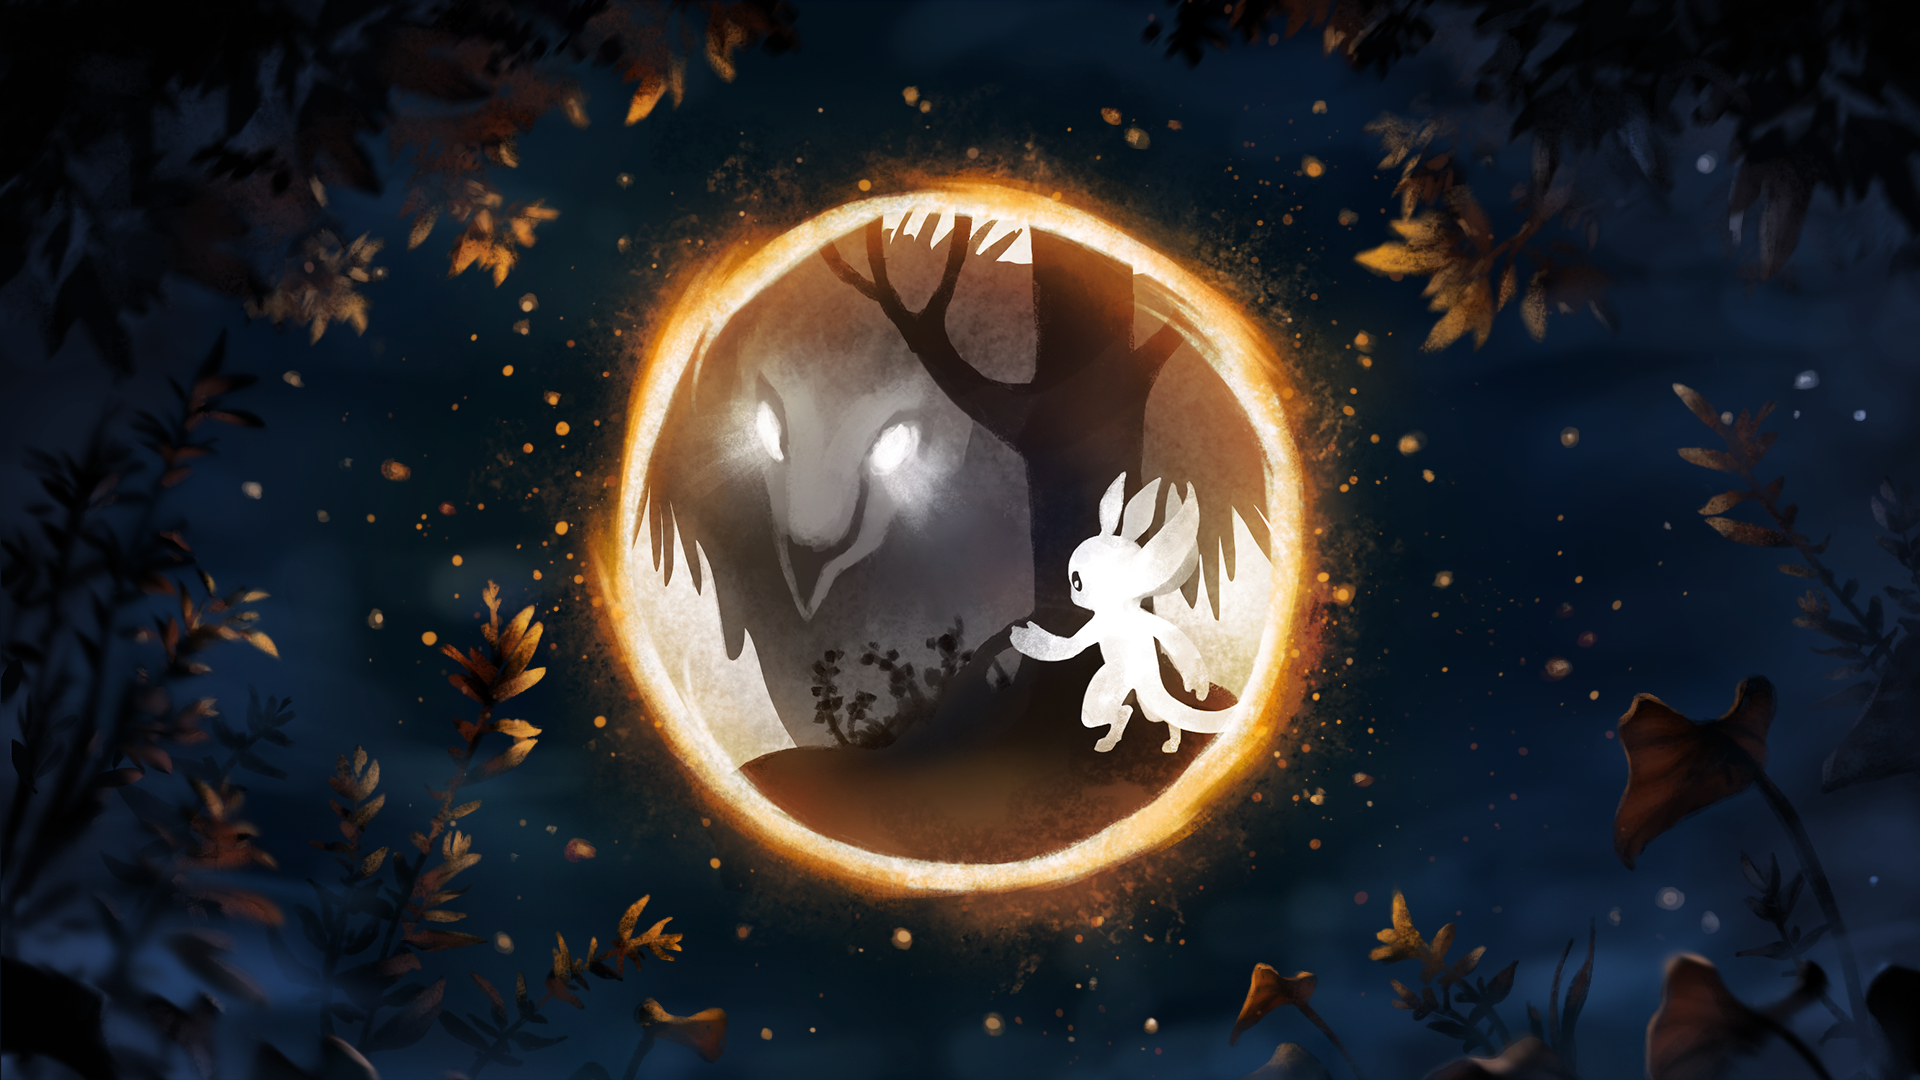 Fight to live another day achievement for Ori and the Blind Forest on Nintendo Switch